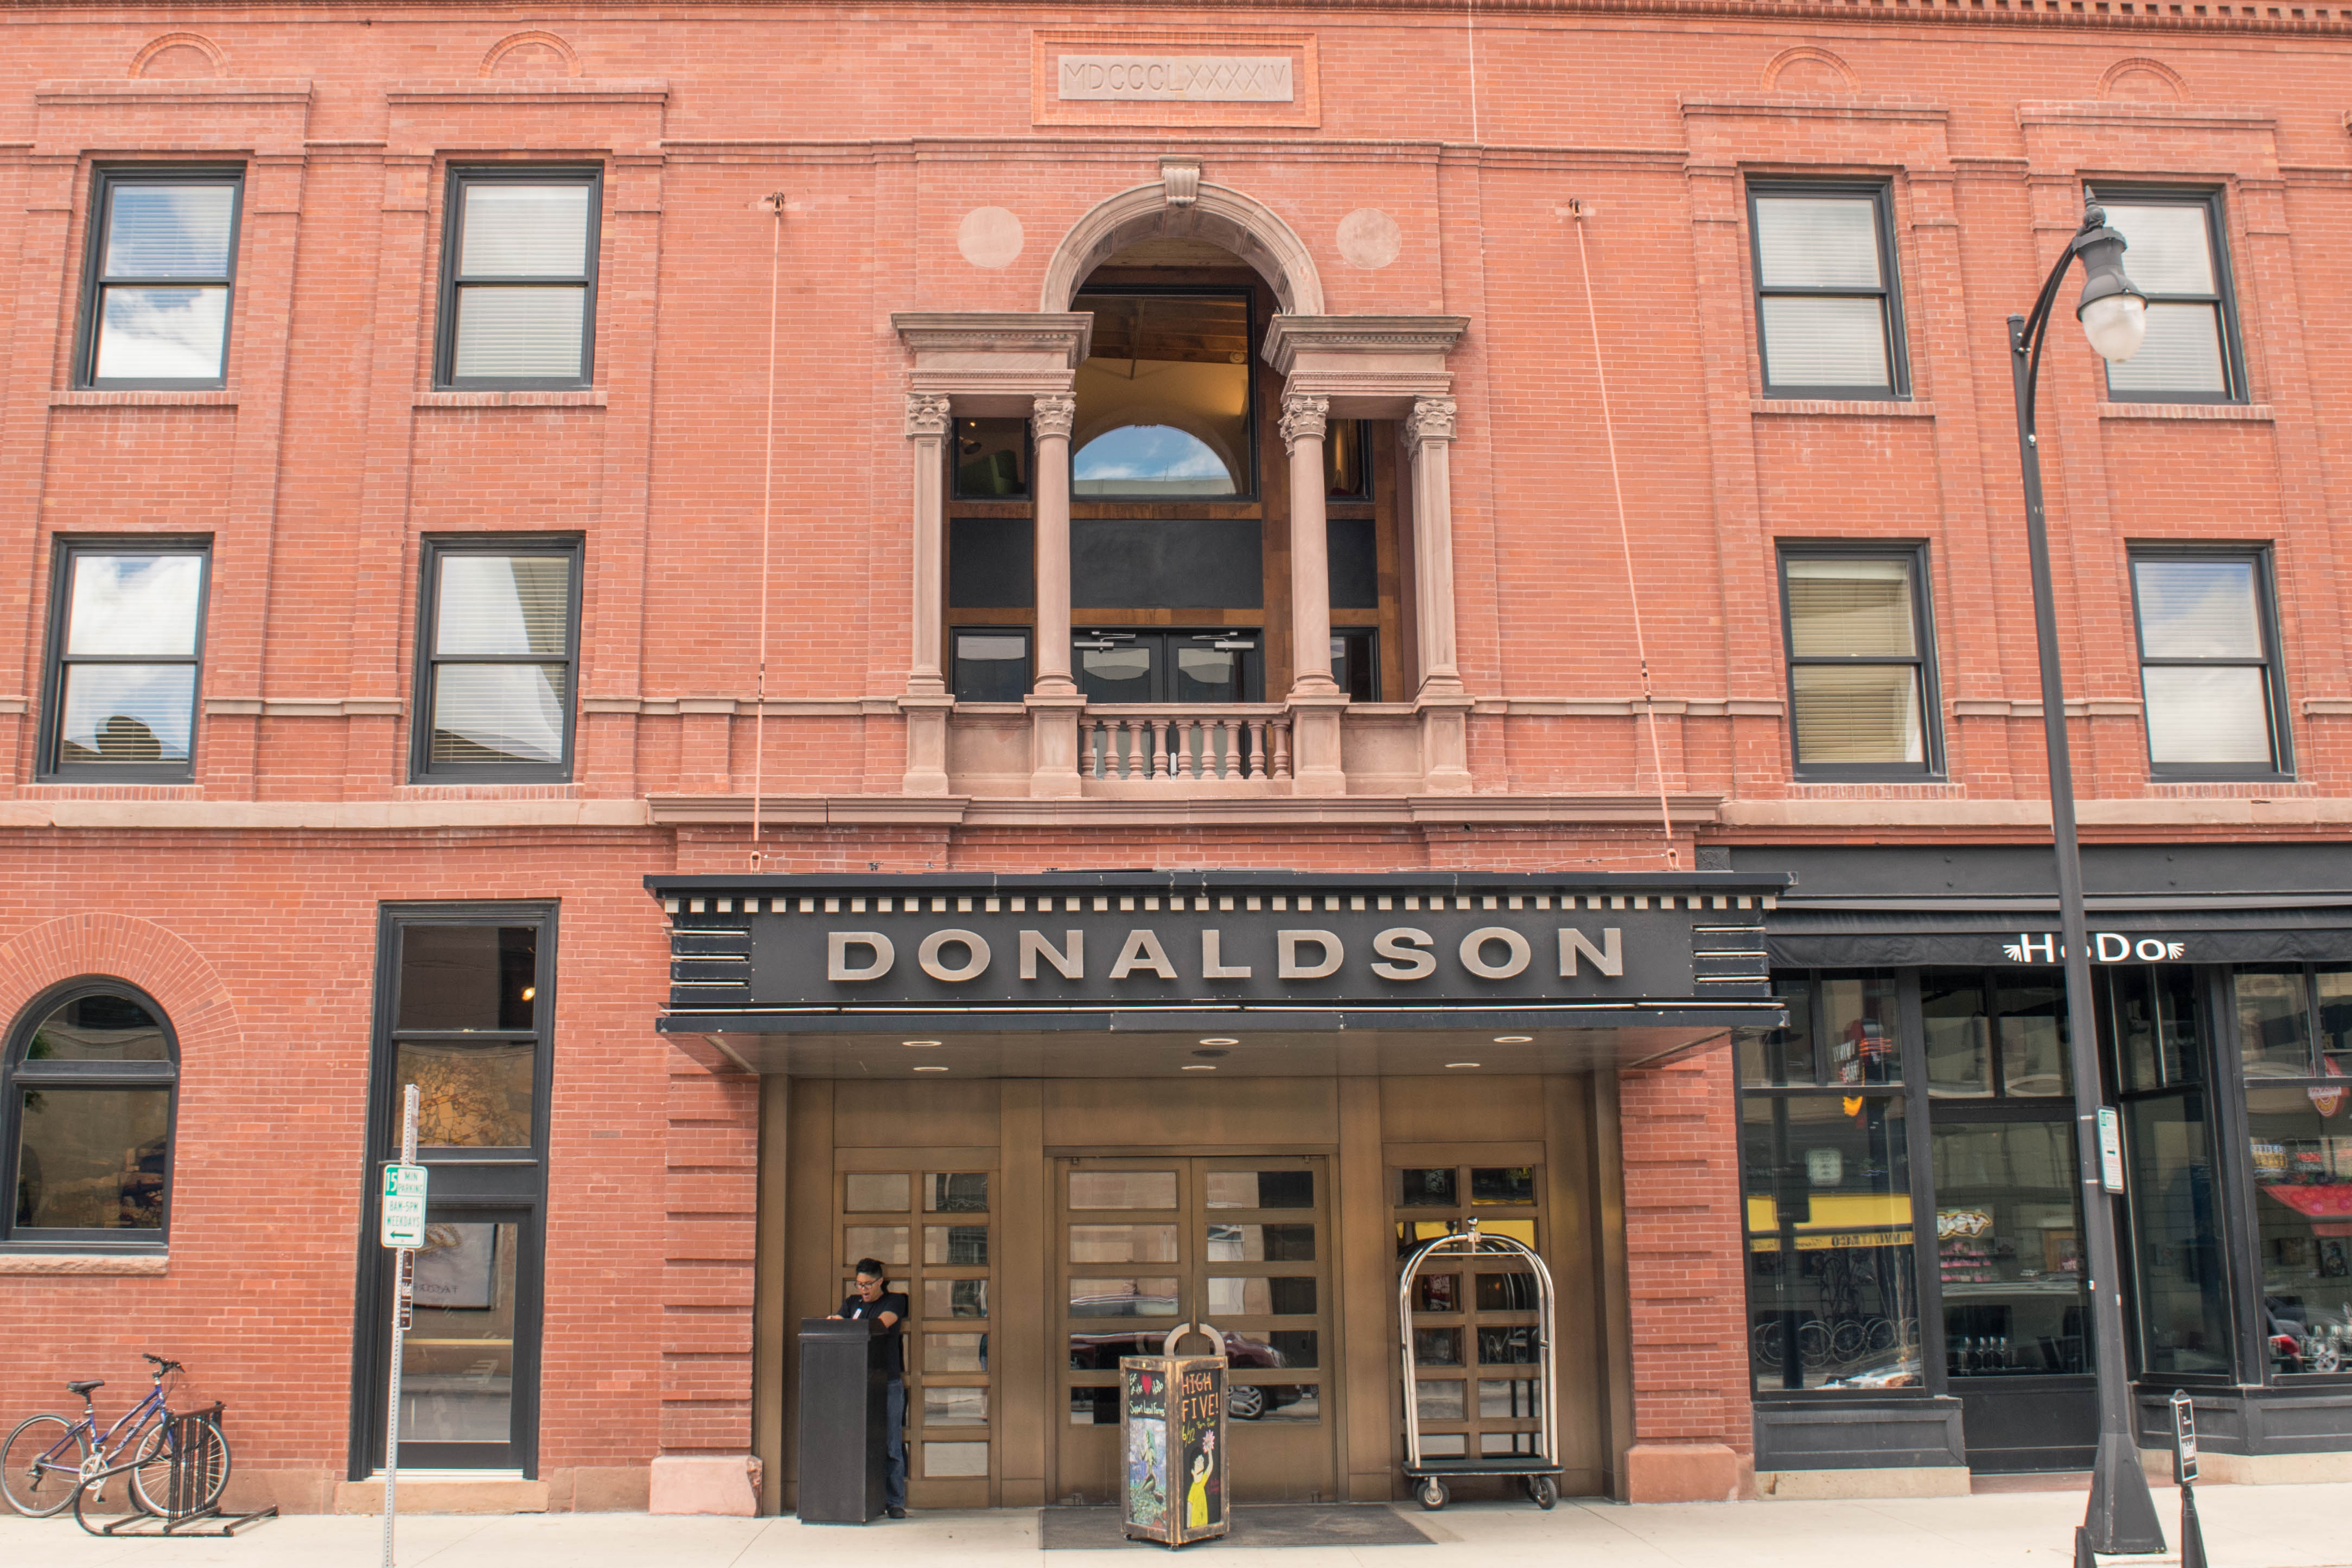 Hotel Donaldson or the HoDo